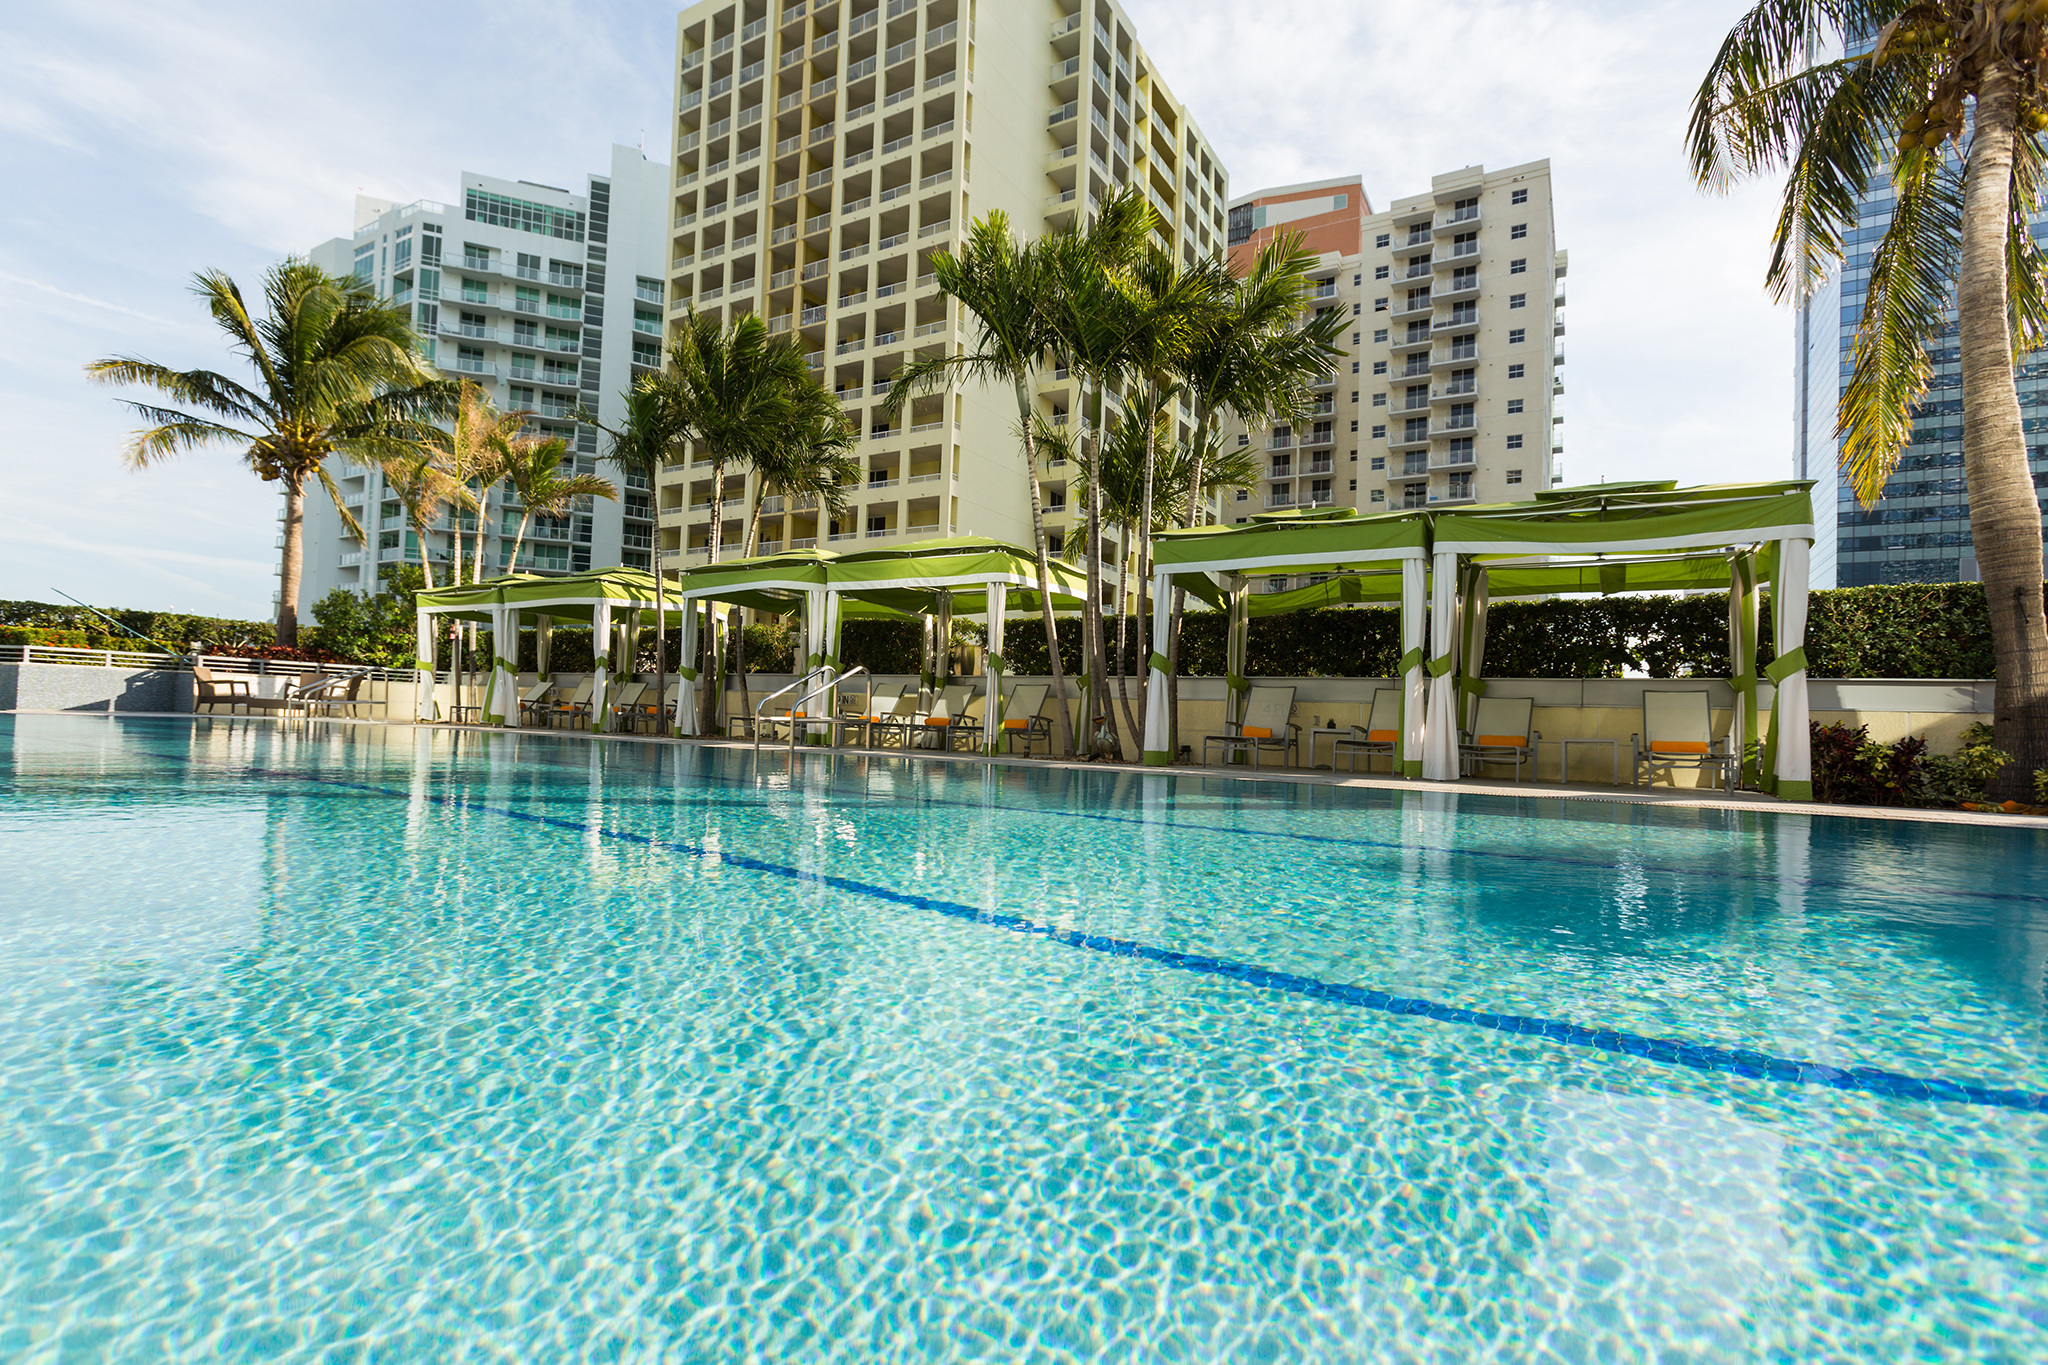 Best swimming pools in miami for splashing and relaxing for Swimming pool construction miami